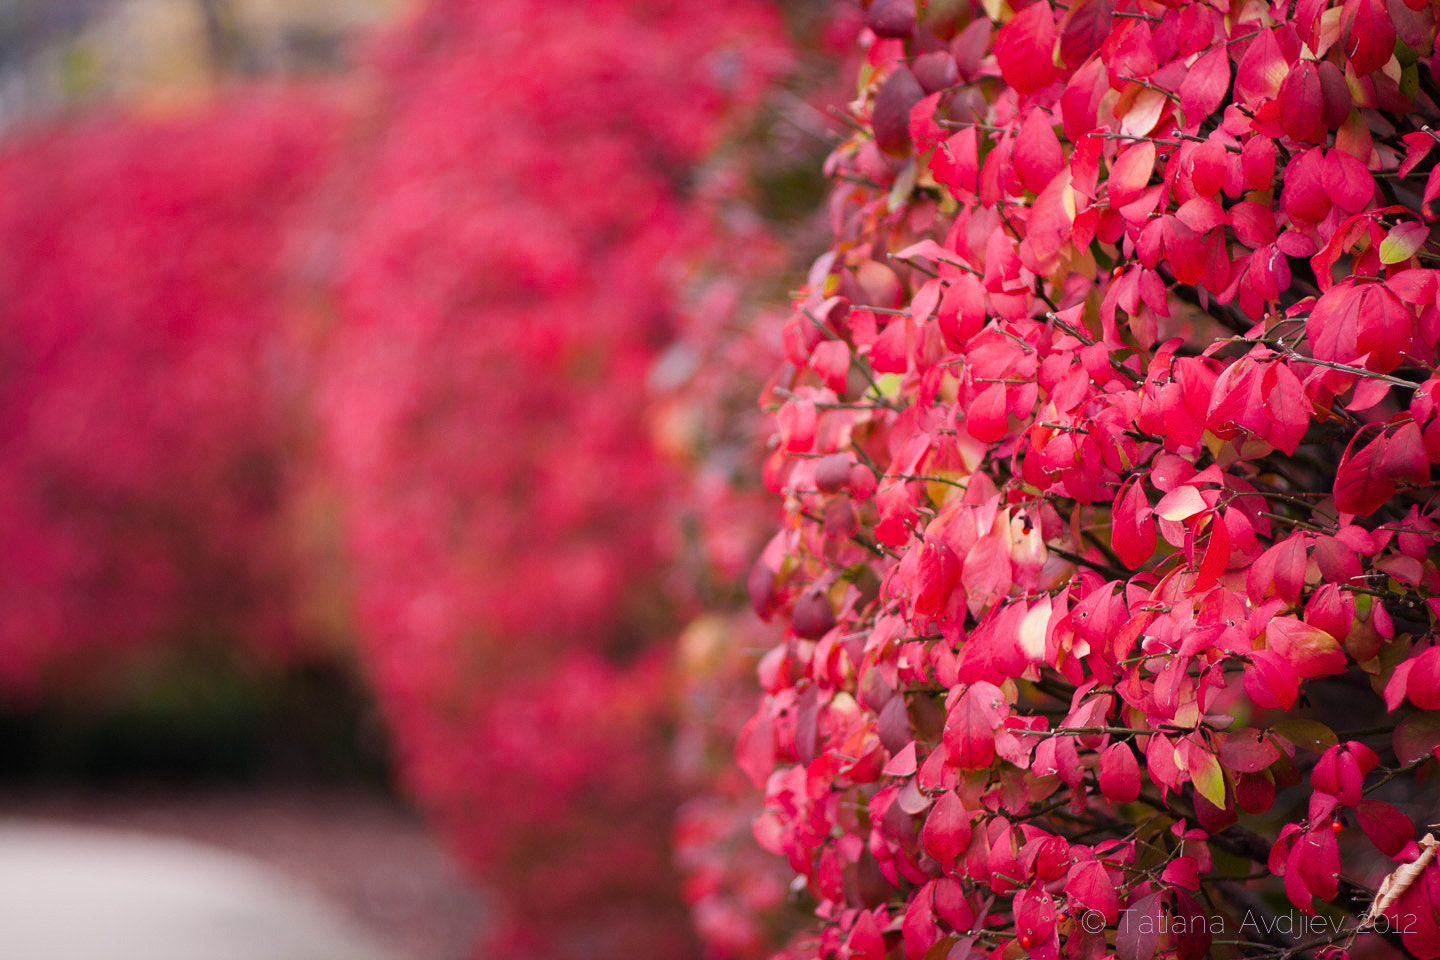 Photograph Bushes in bright pink by Tatiana Avdjiev on 500px